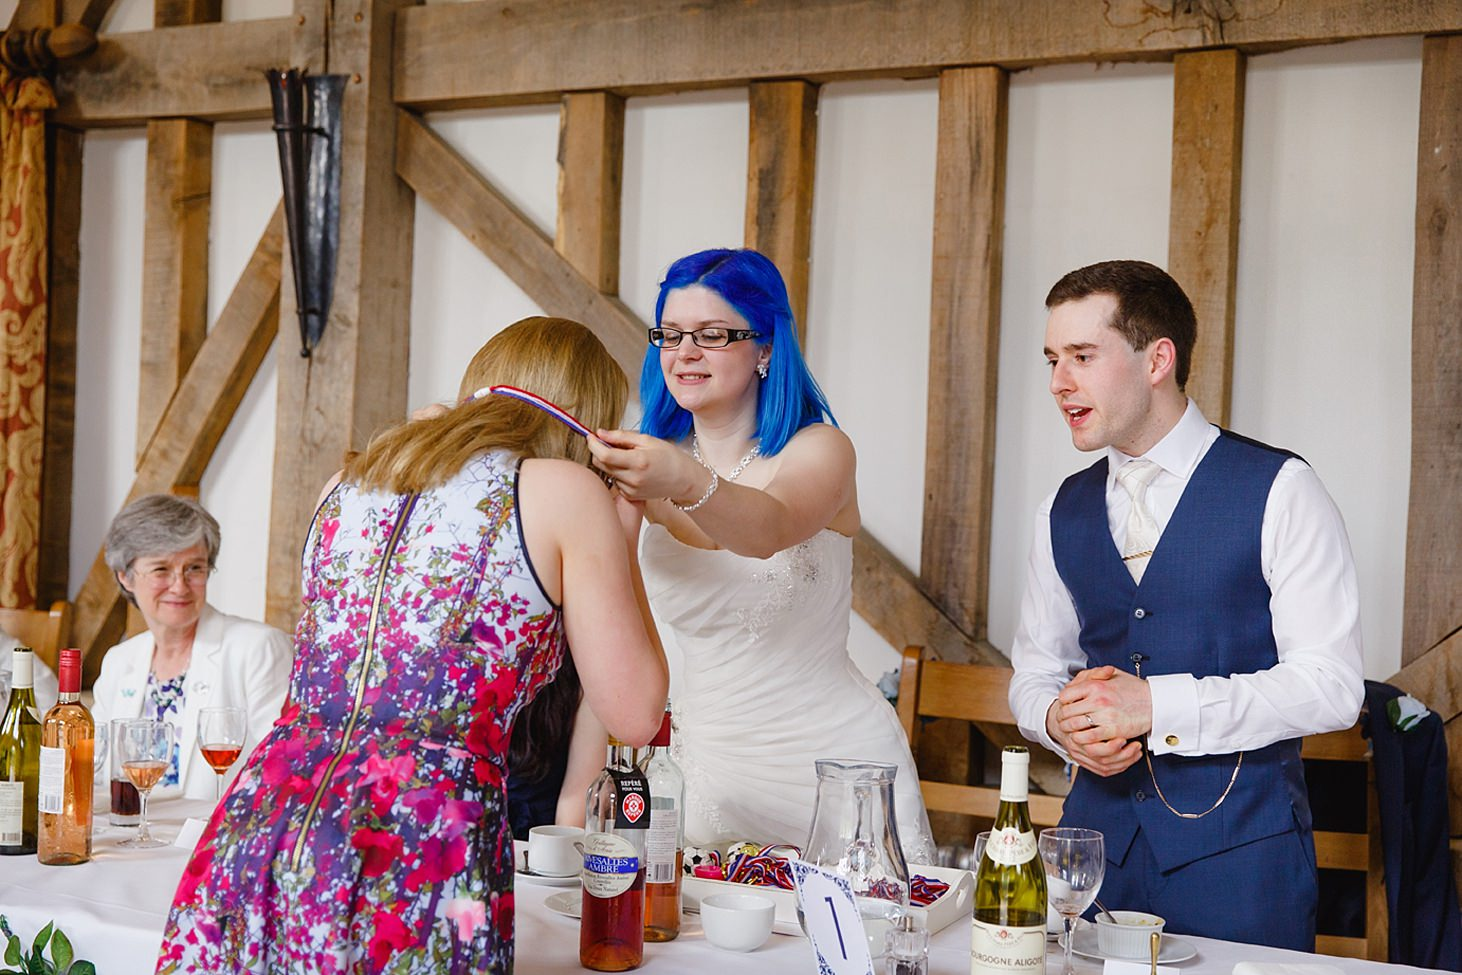 gate street barn wedding photography bride giving medal